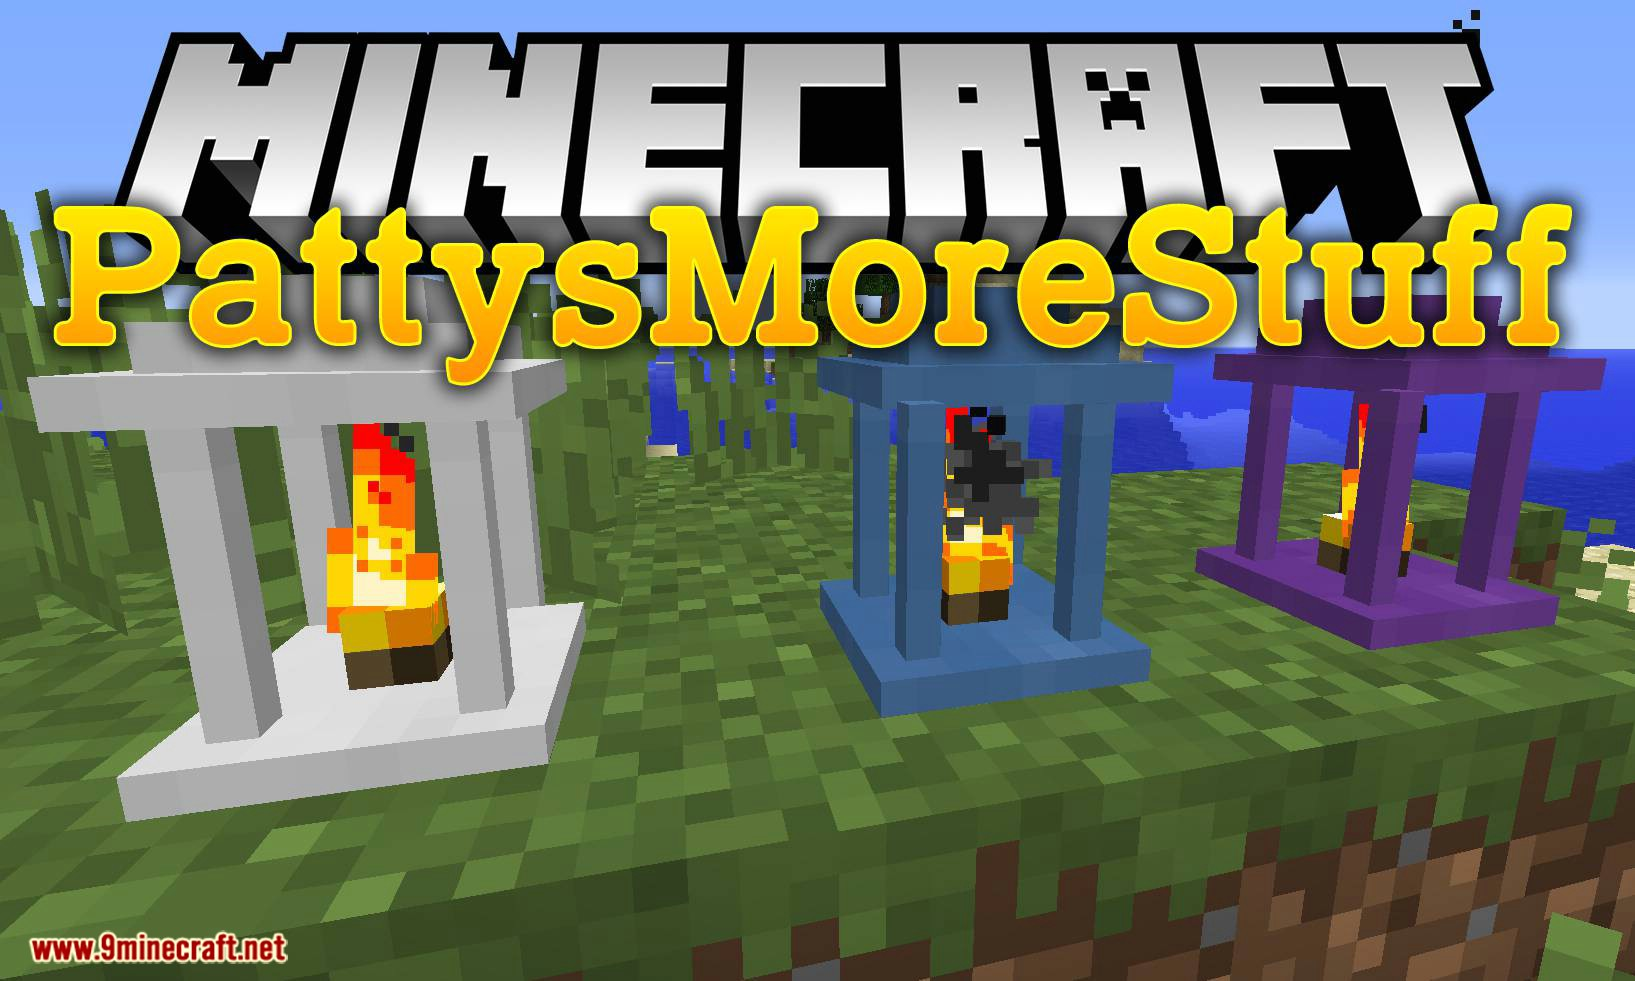 PattysMoreStuff mod for minecraft logo